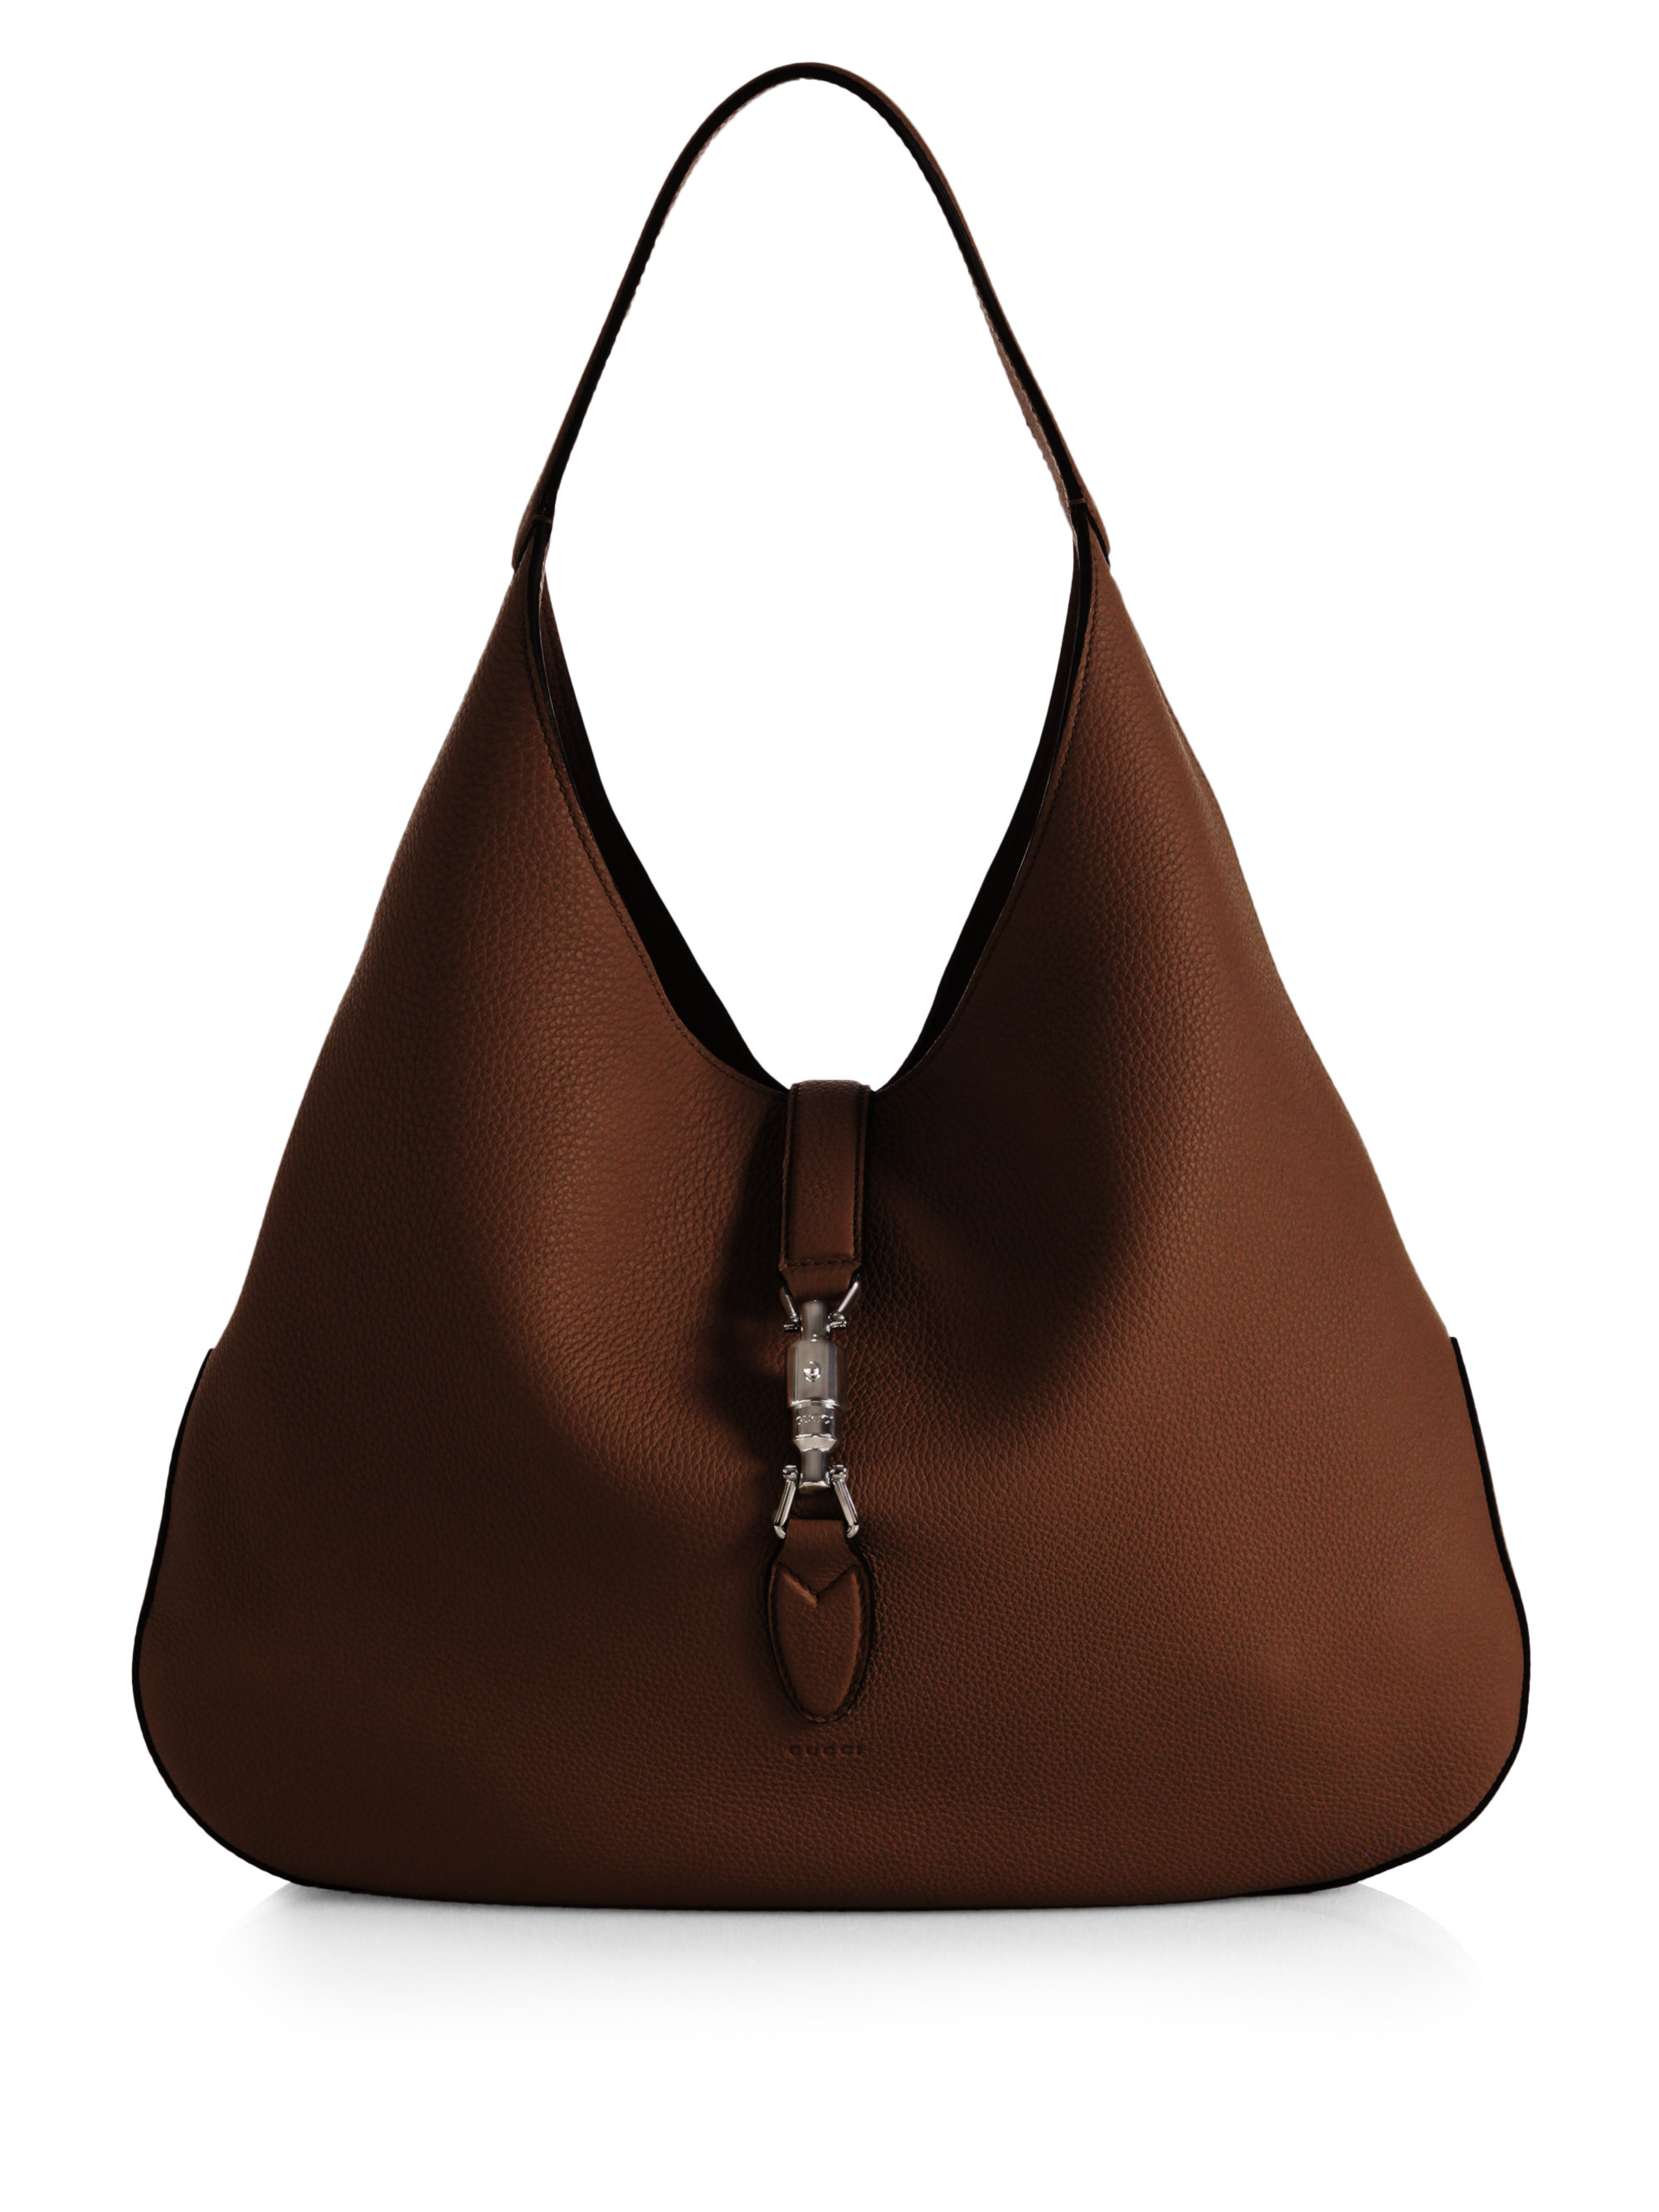 Gucci Jackie Soft Leather Hobo Bag in Brown | Lyst